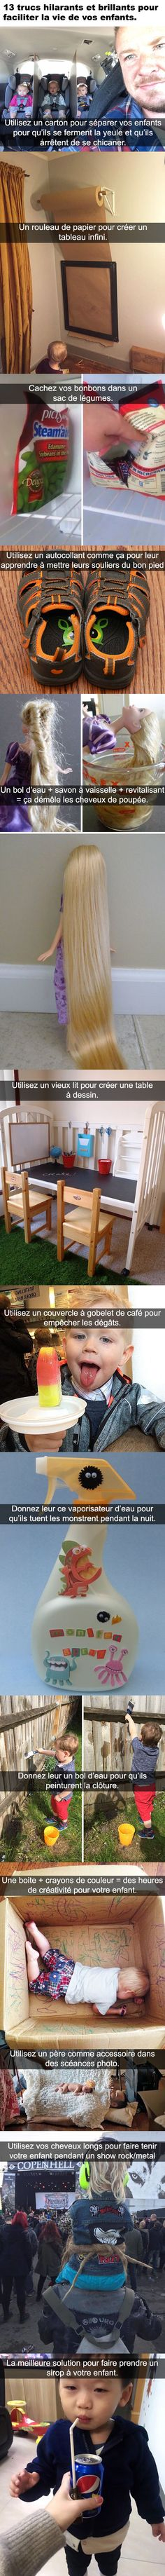 13 trucs hilarants et brillants pour faciliter la vie de vos enfants Useful Life Hacks, Simple Life Hacks, Cool Inventions, Funny Text Messages, Funny Texts, Funny Jokes, Videos Funny, Touch Me, My Children